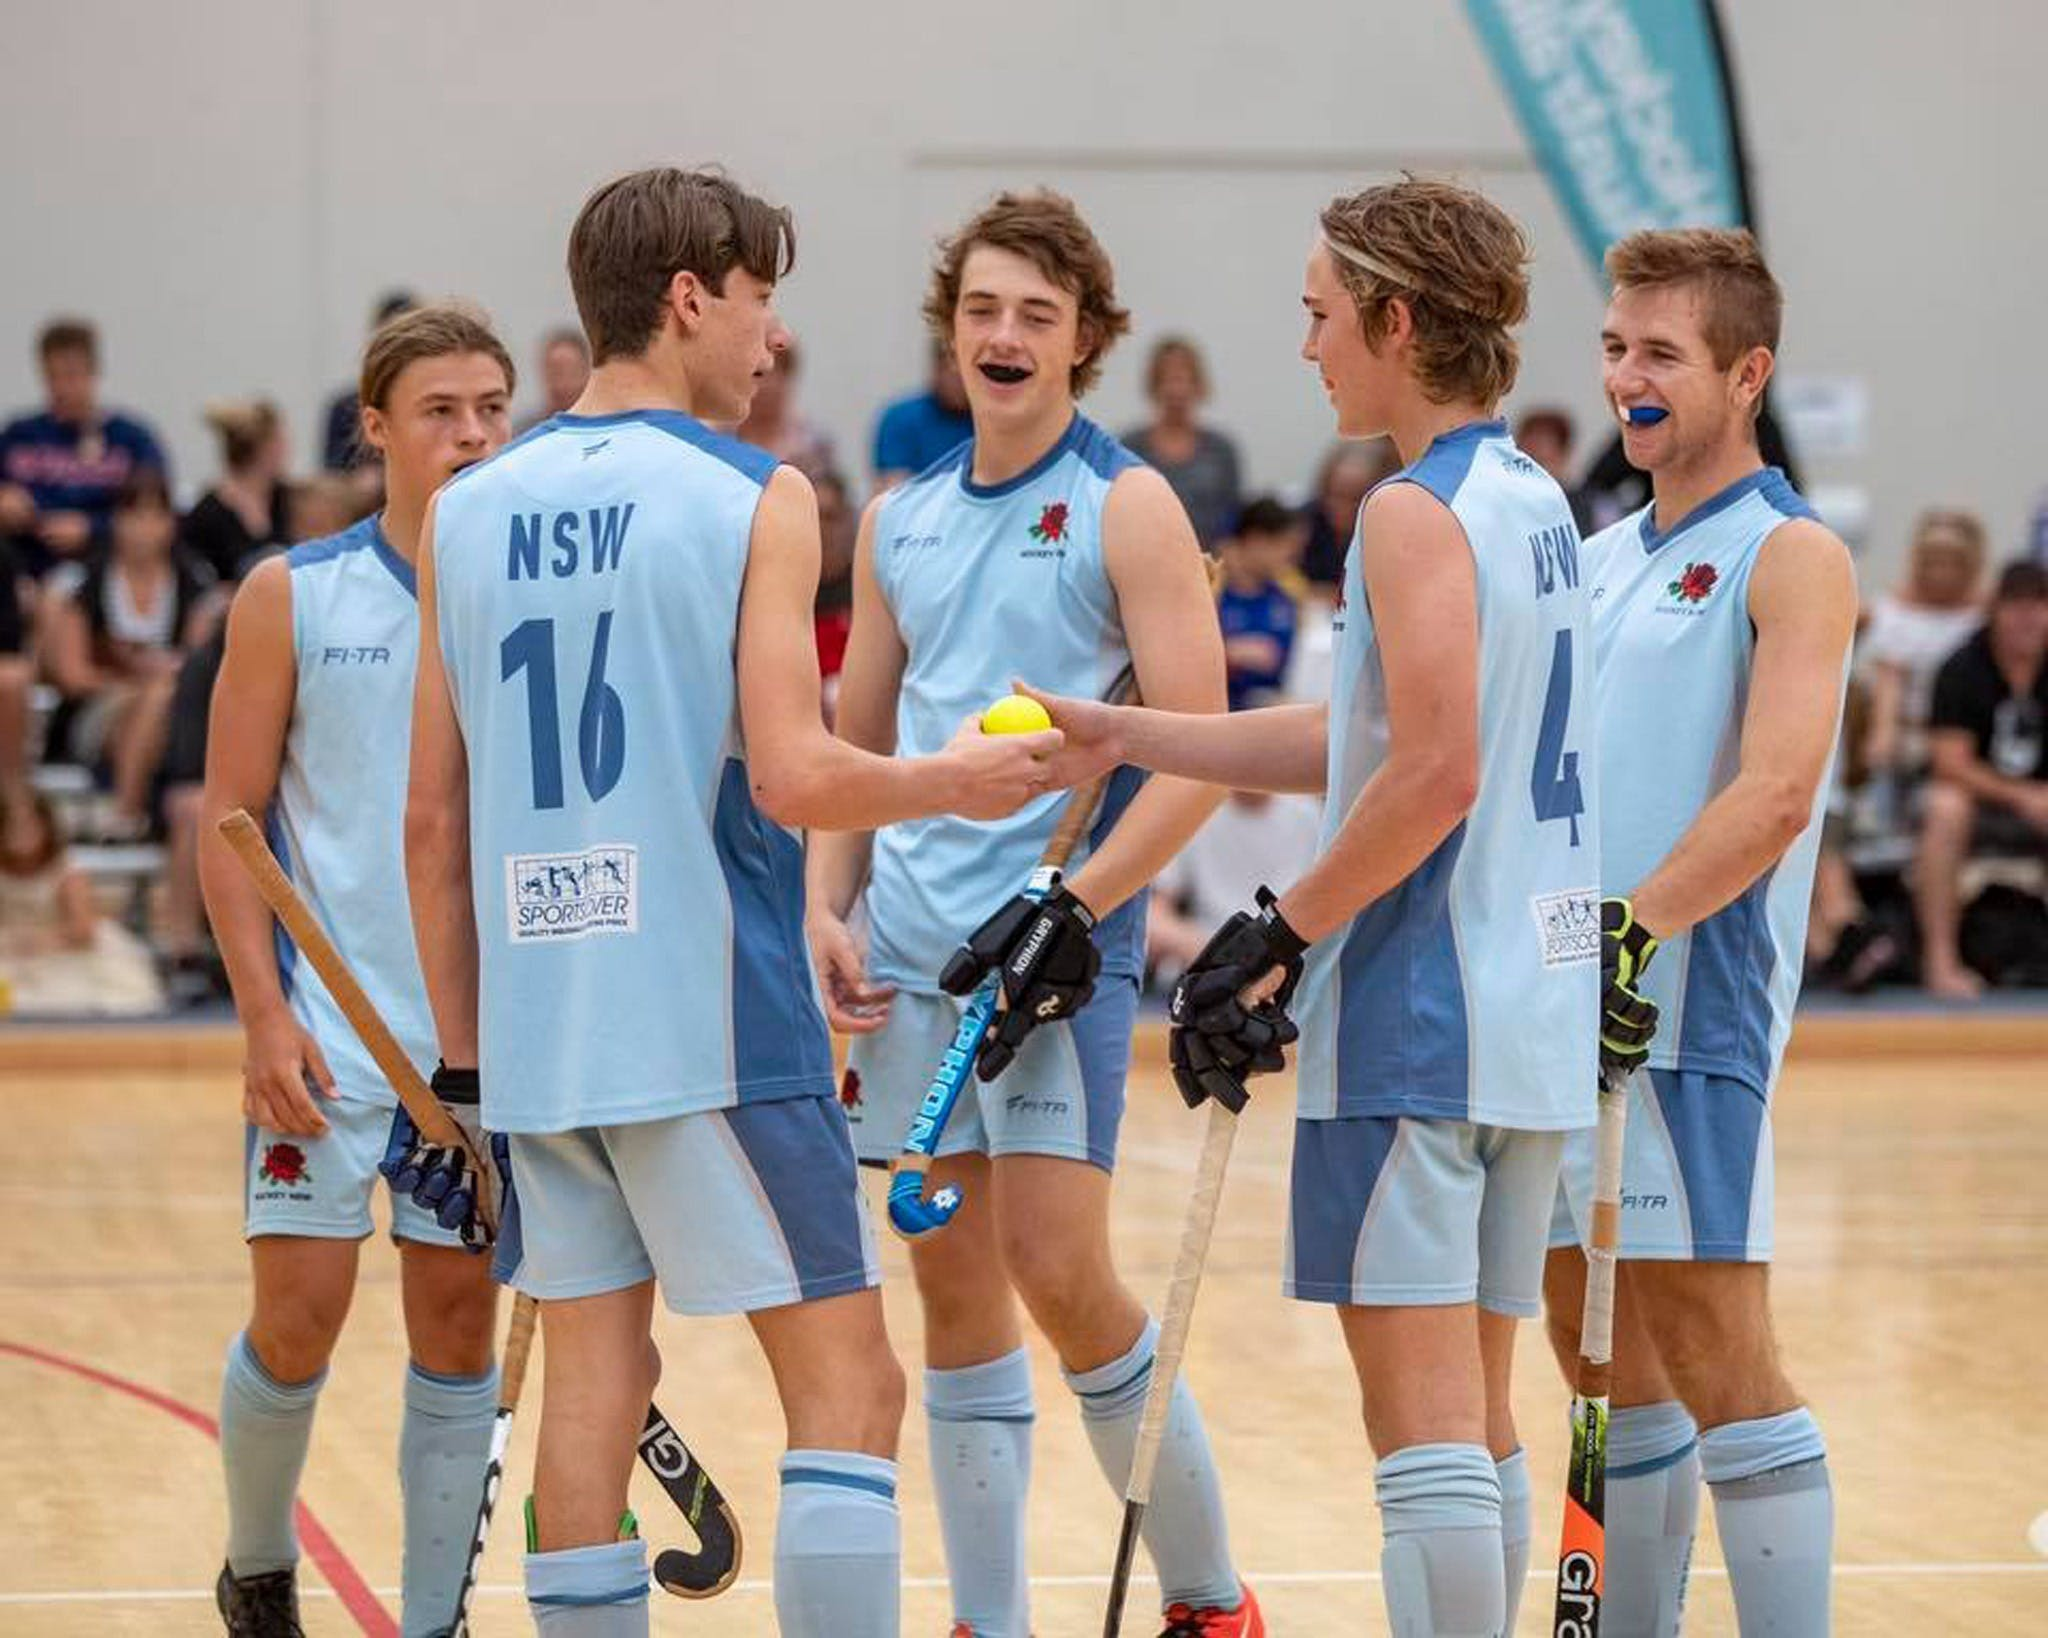 Hockey NSW Indoor State Championship  Open Men - Yarra Valley Accommodation